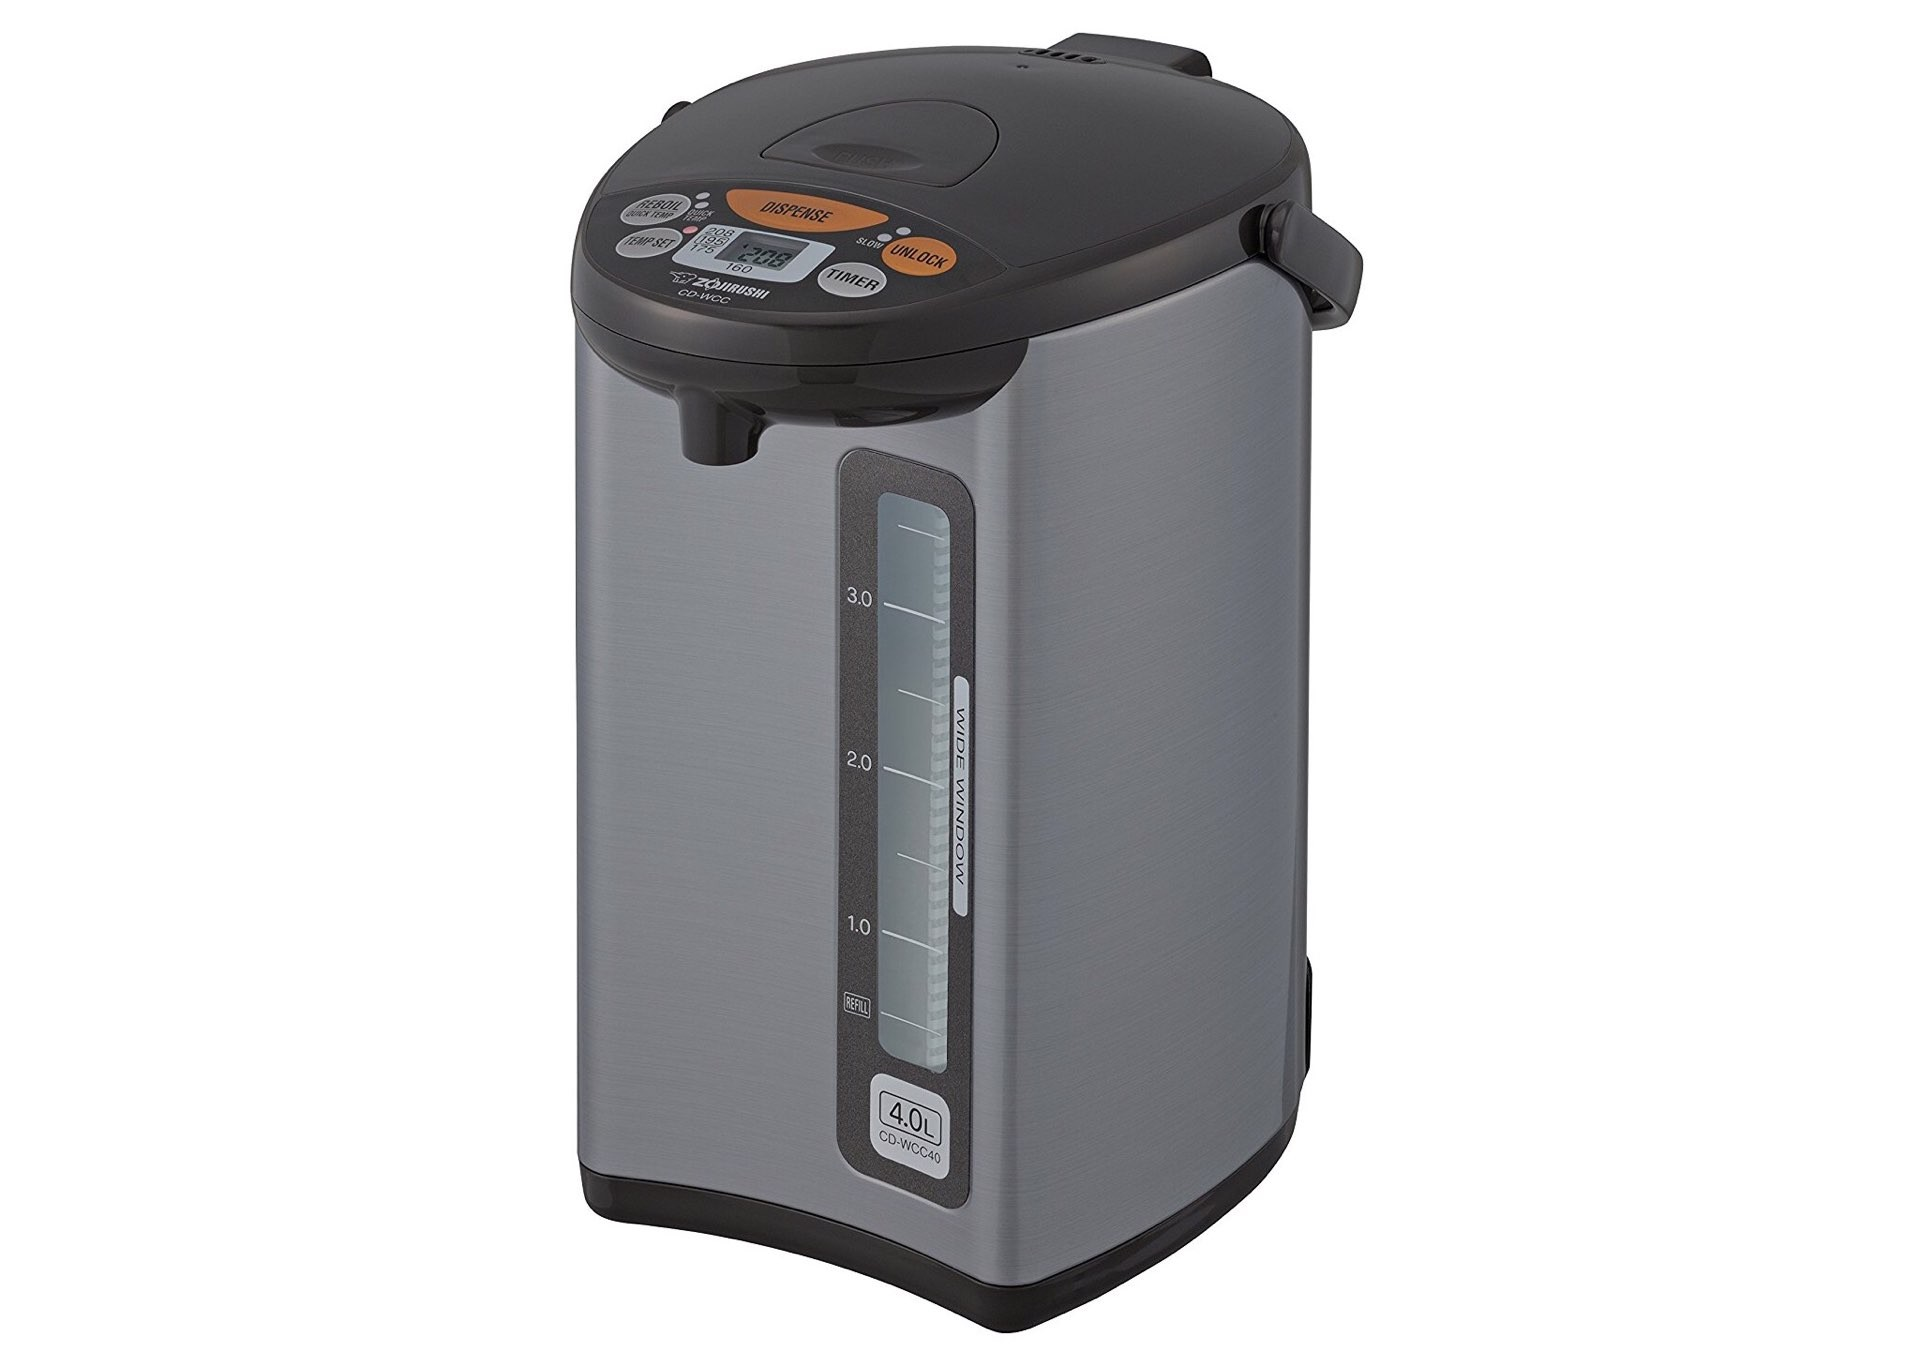 Zojirushi CD-WCC40 water boiler and warmer. ($128)